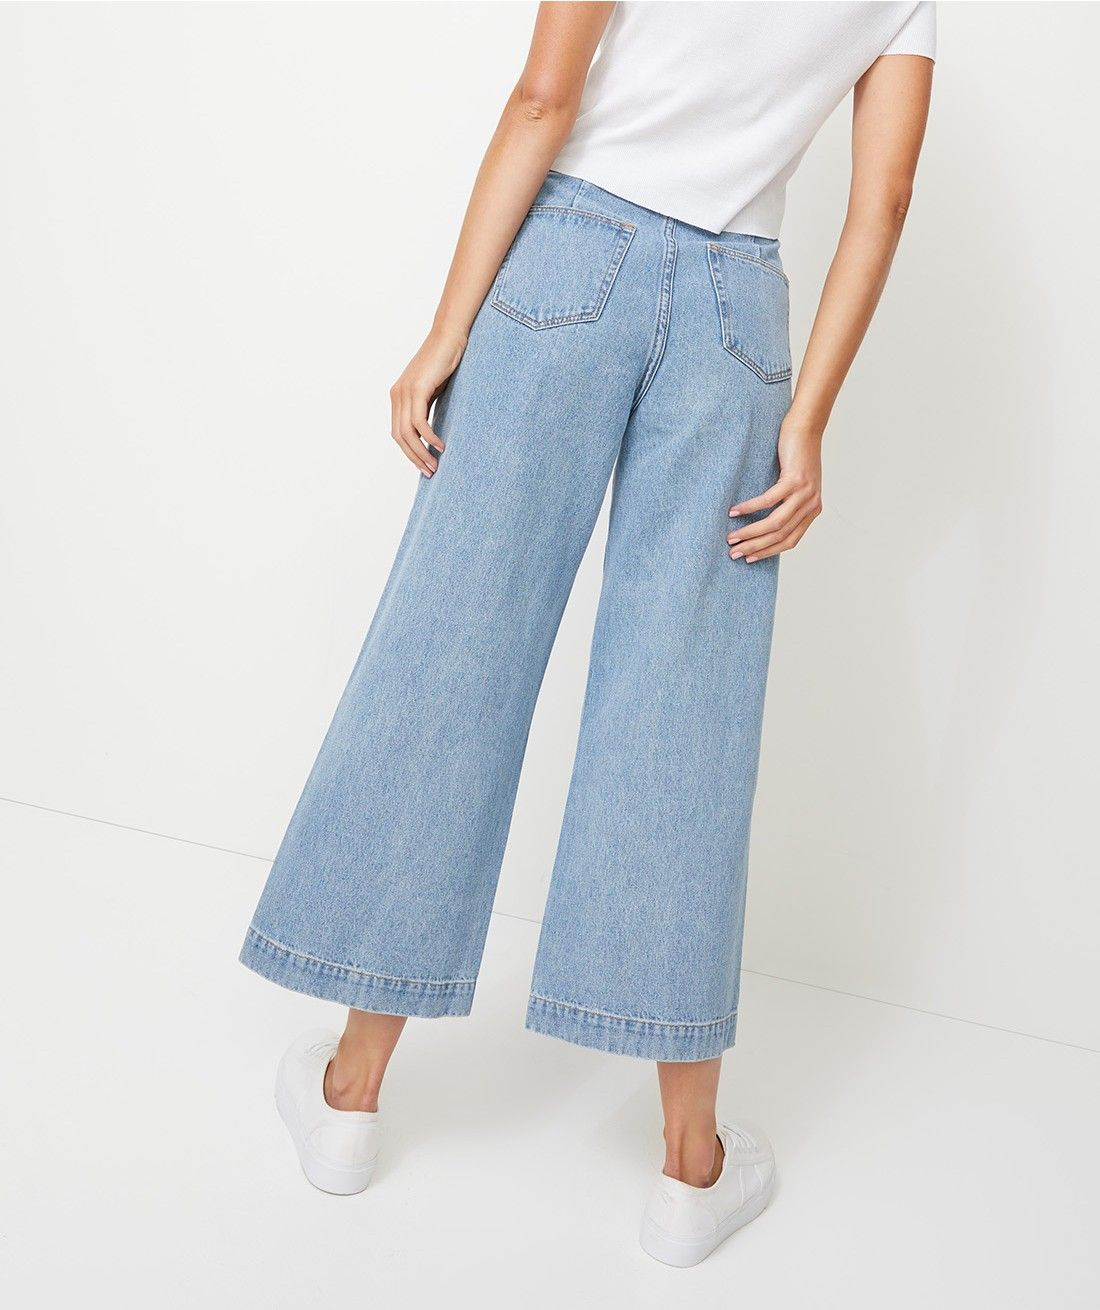 The Edit - Retro Jean - Clothing - Sportsgirl   Retro jeans, Clothes, Jean  outfits